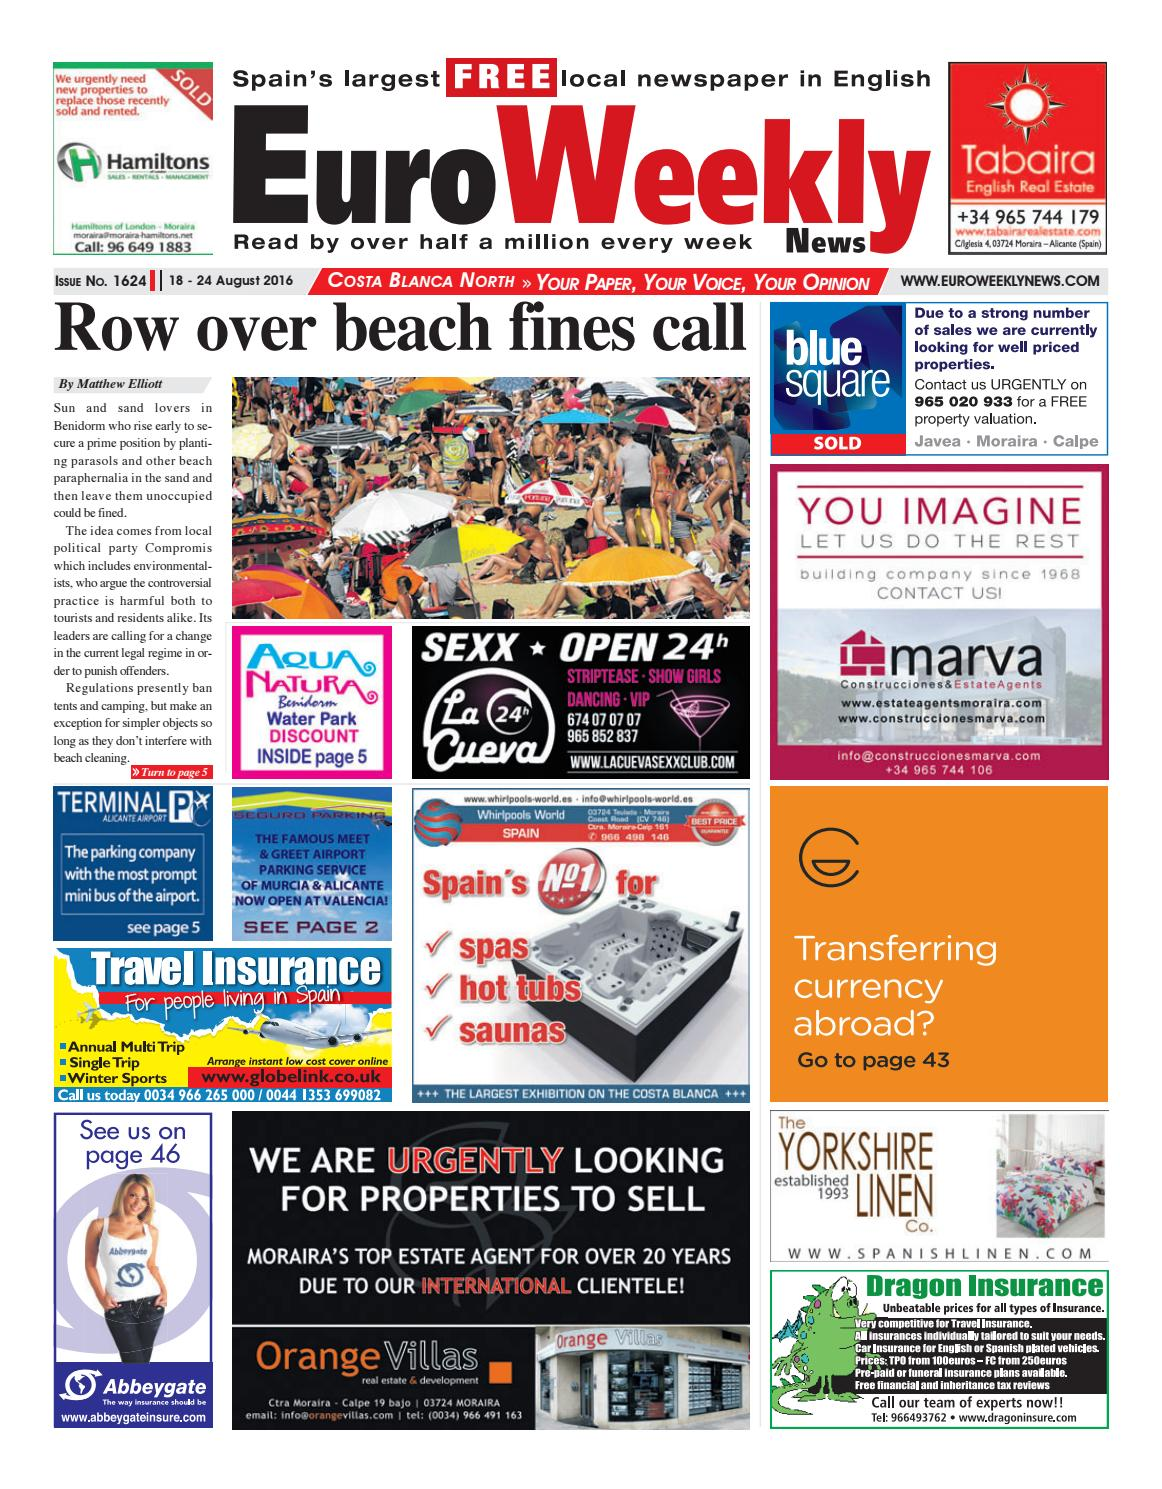 Euro Weekly News - Costa Blanca North 18 - 24 August 2016 Issue 1624 by  Euro Weekly News Media S.A. - issuu